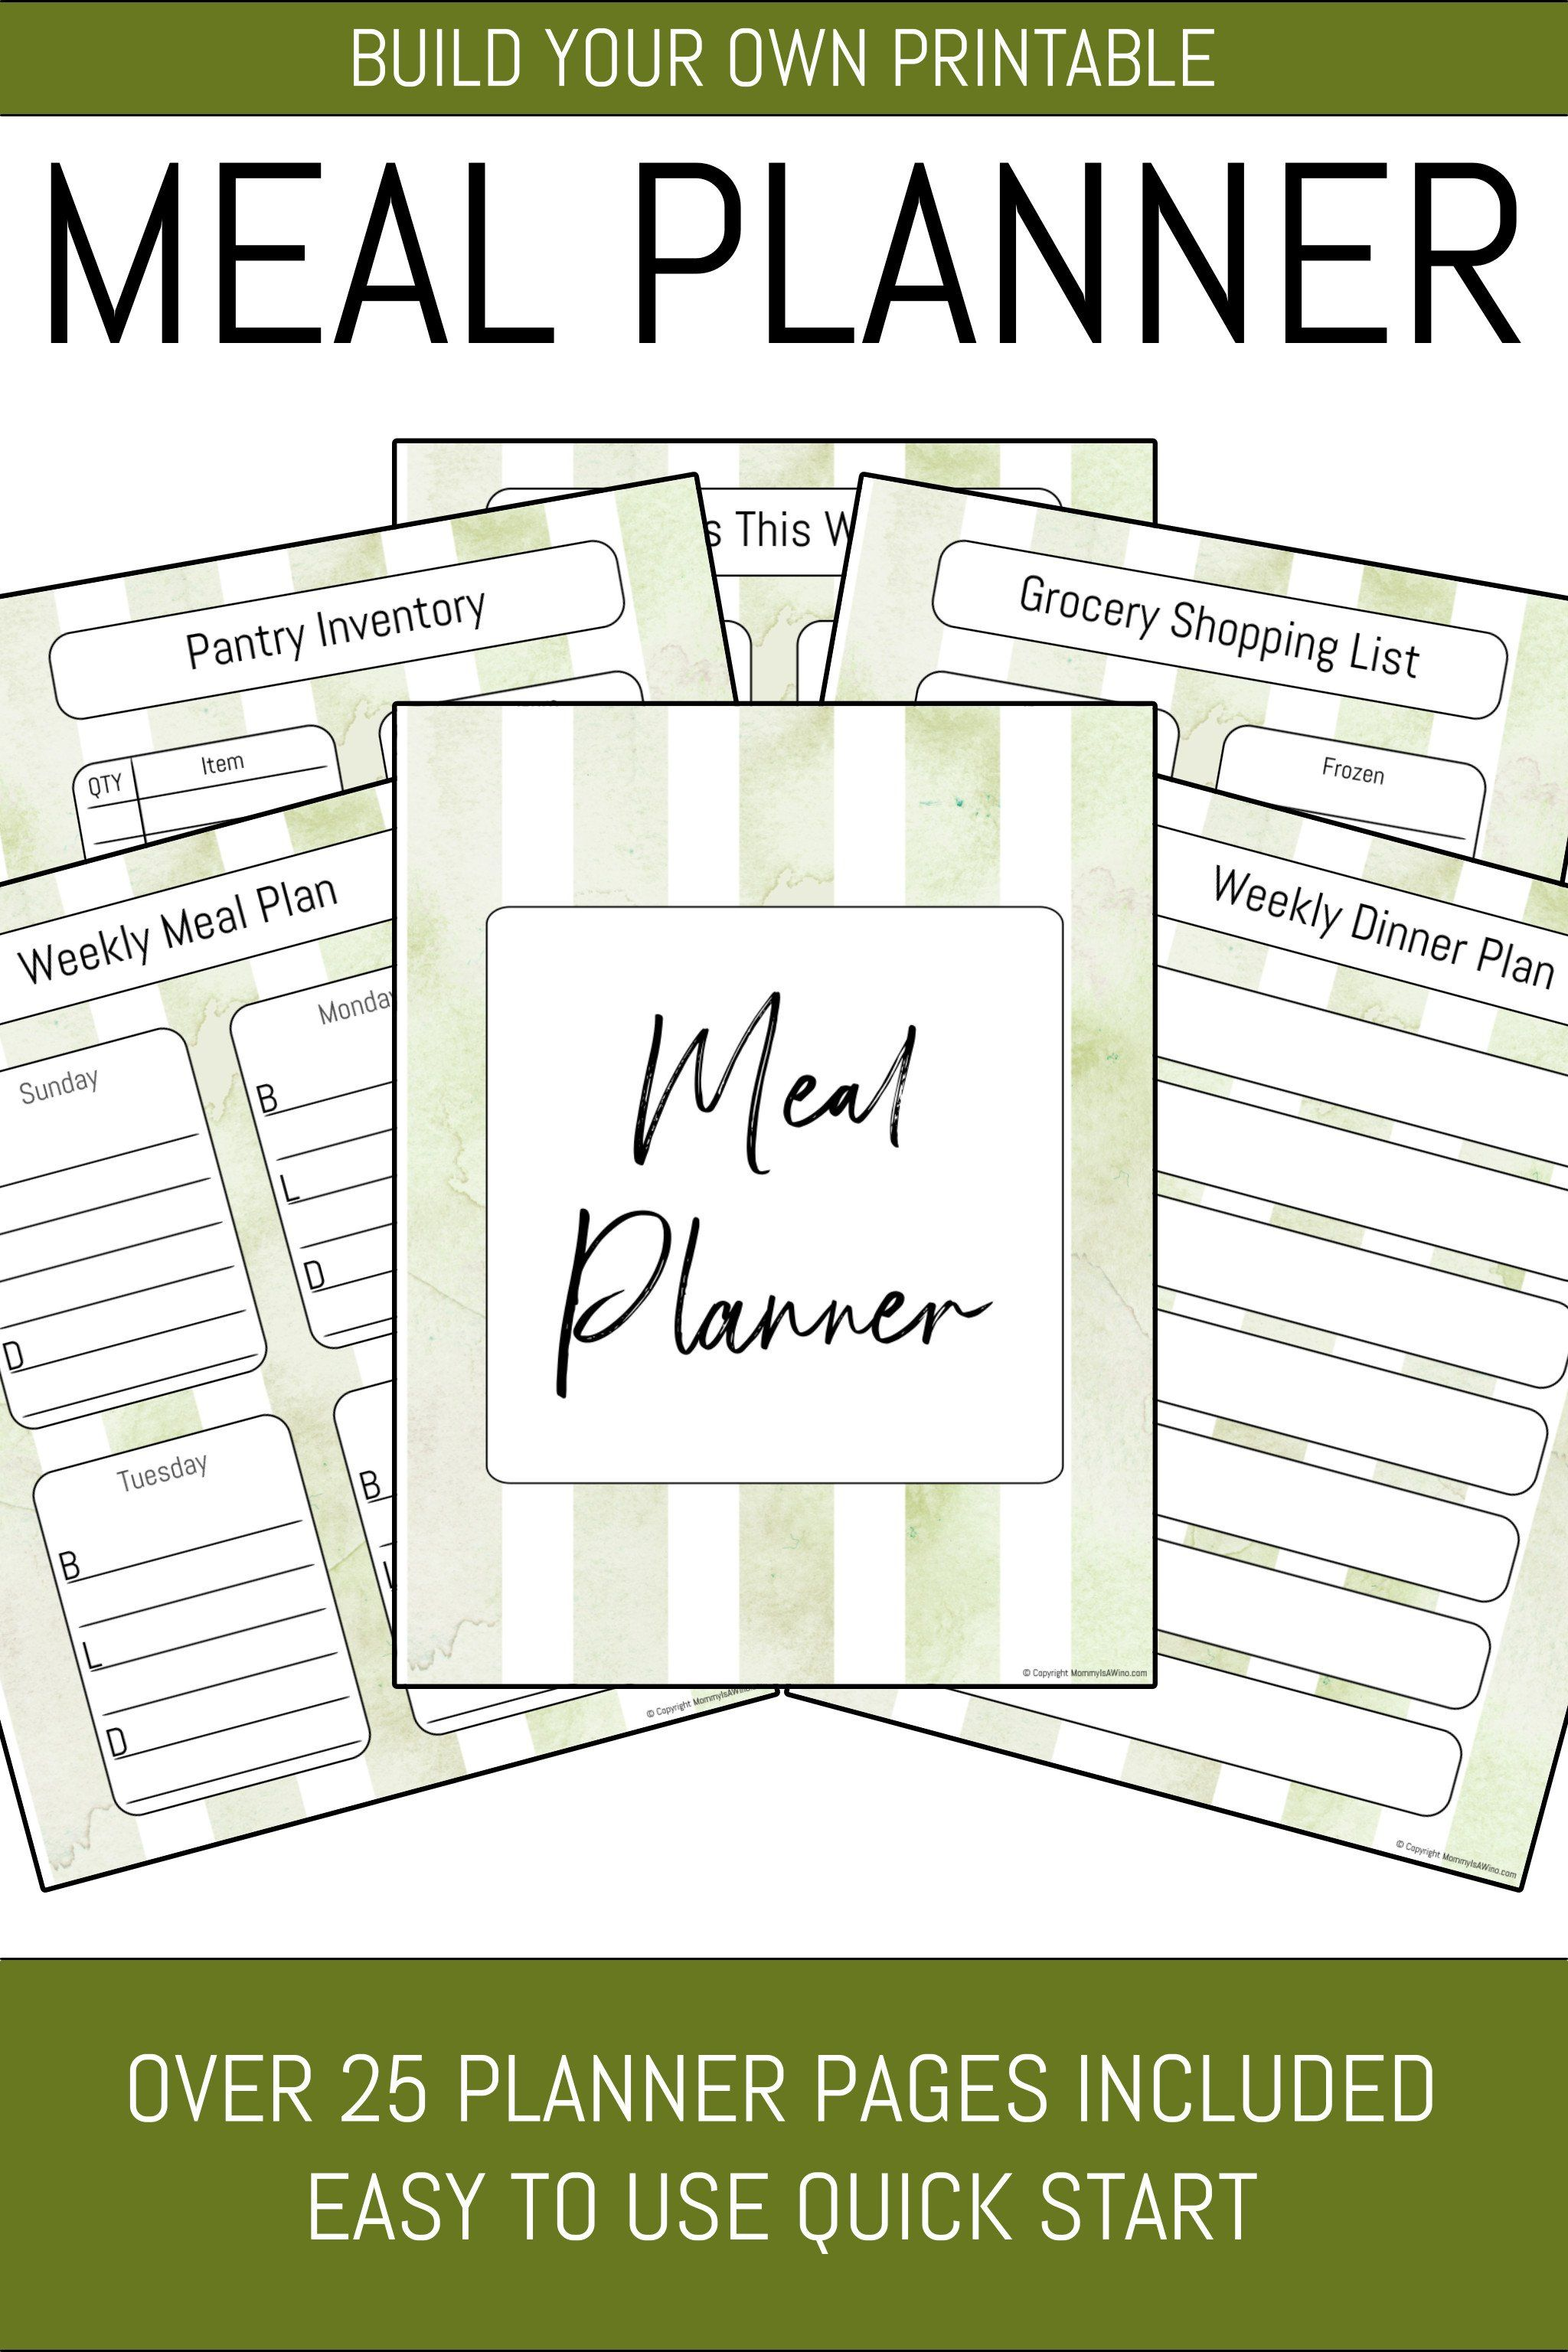 Meal Planner Binder 29 Pages